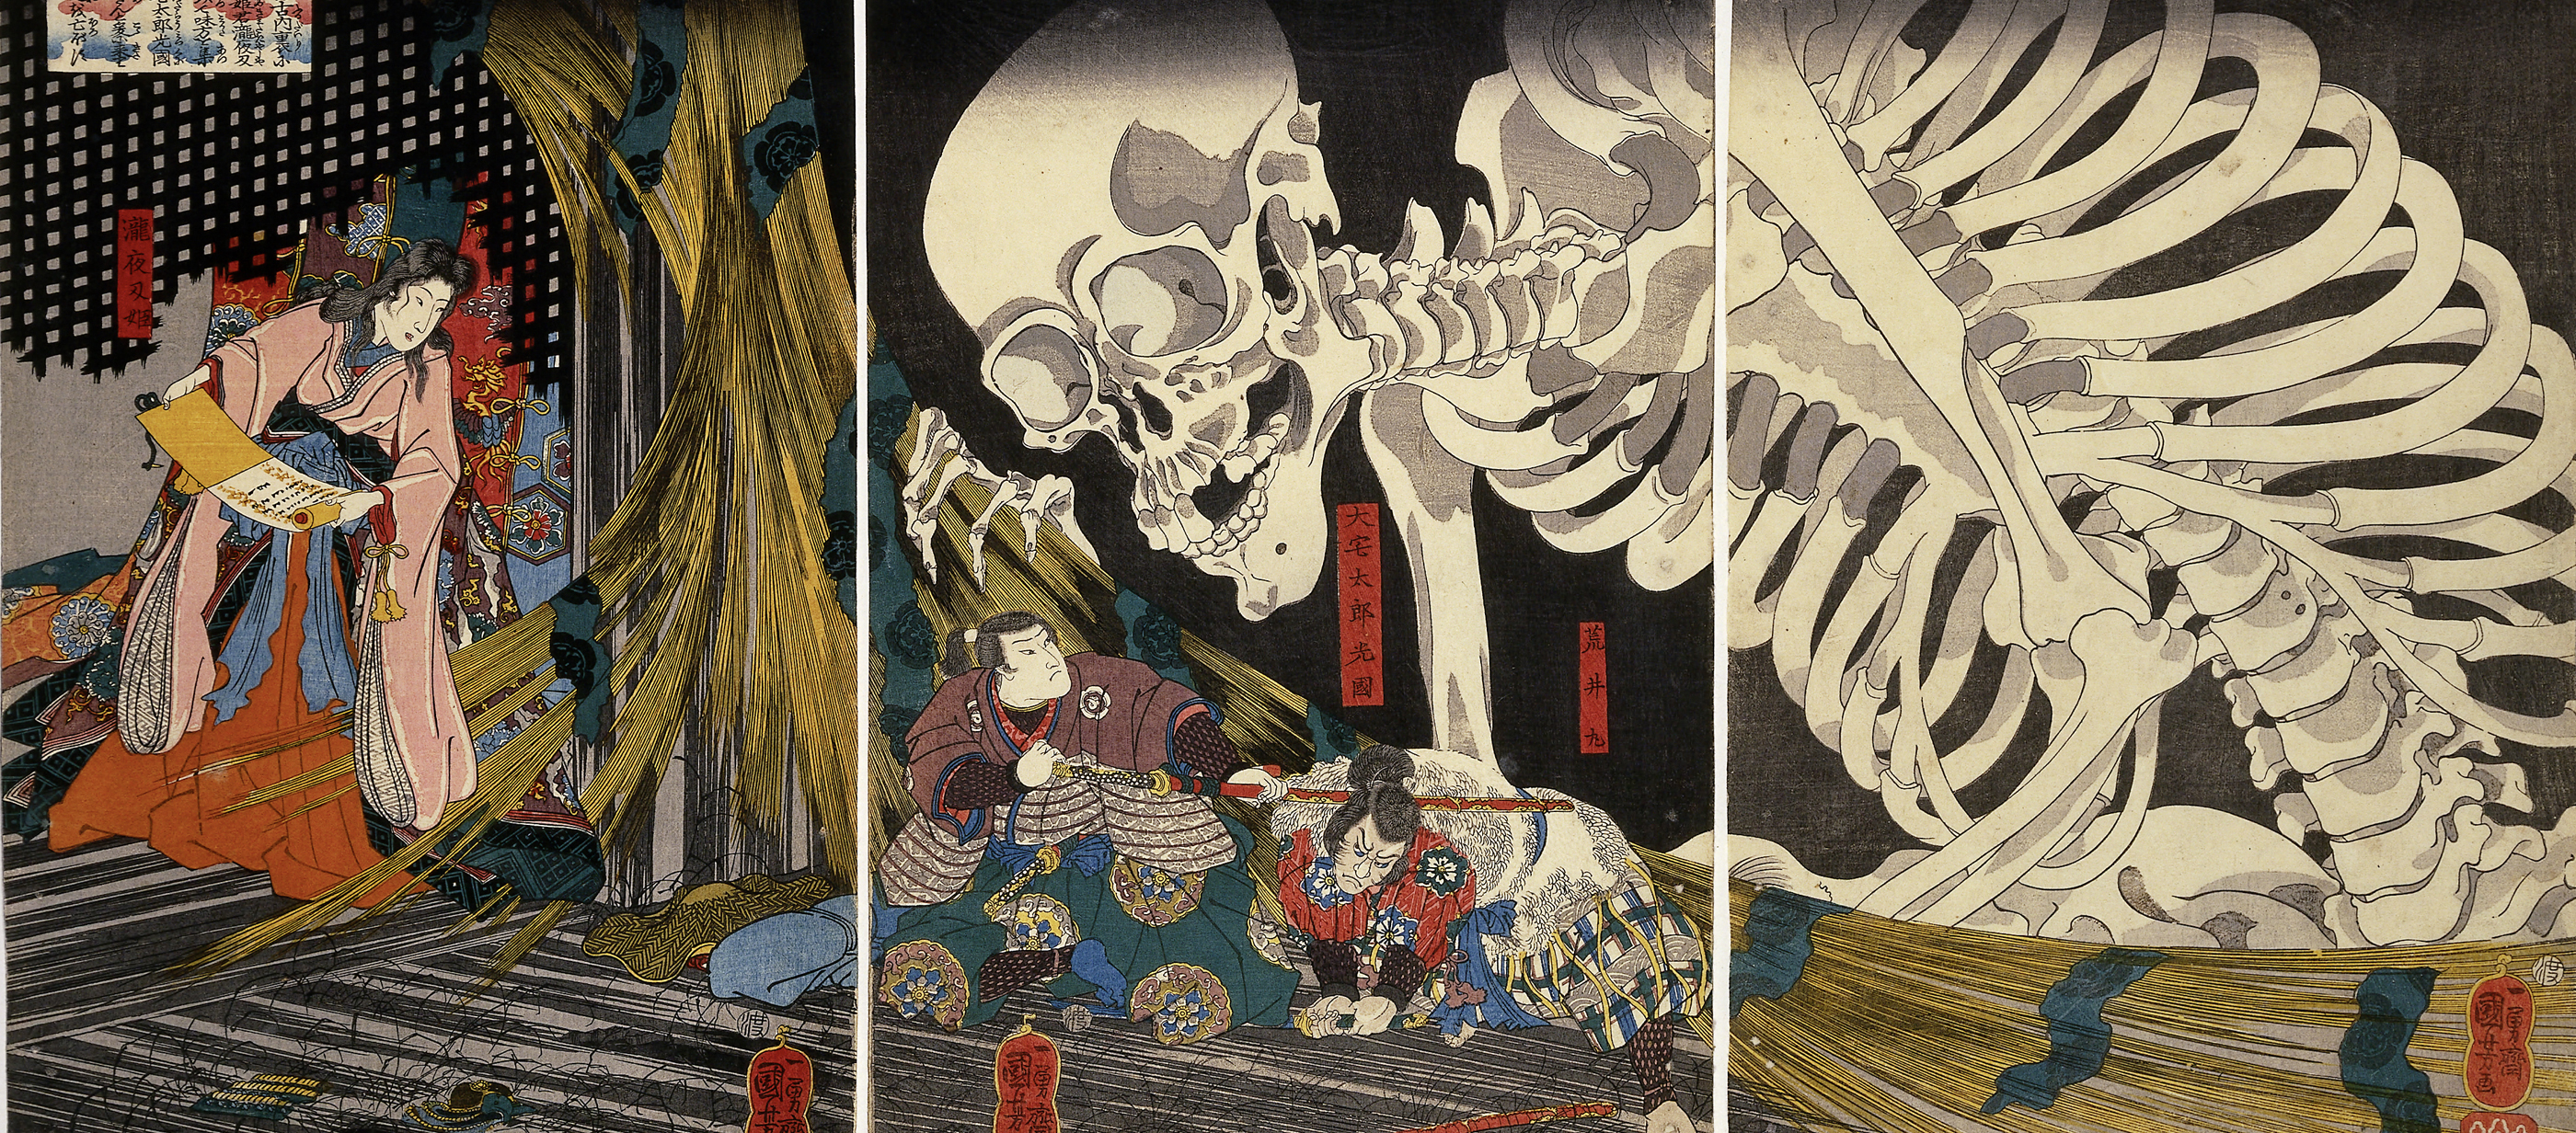 . Princess Takiyasha, tenth-century conspirator against the Japanese emperor, summons a skeleton to frighten government officials searching for her, by Utagawa Kuniyoshi, c. 1844.